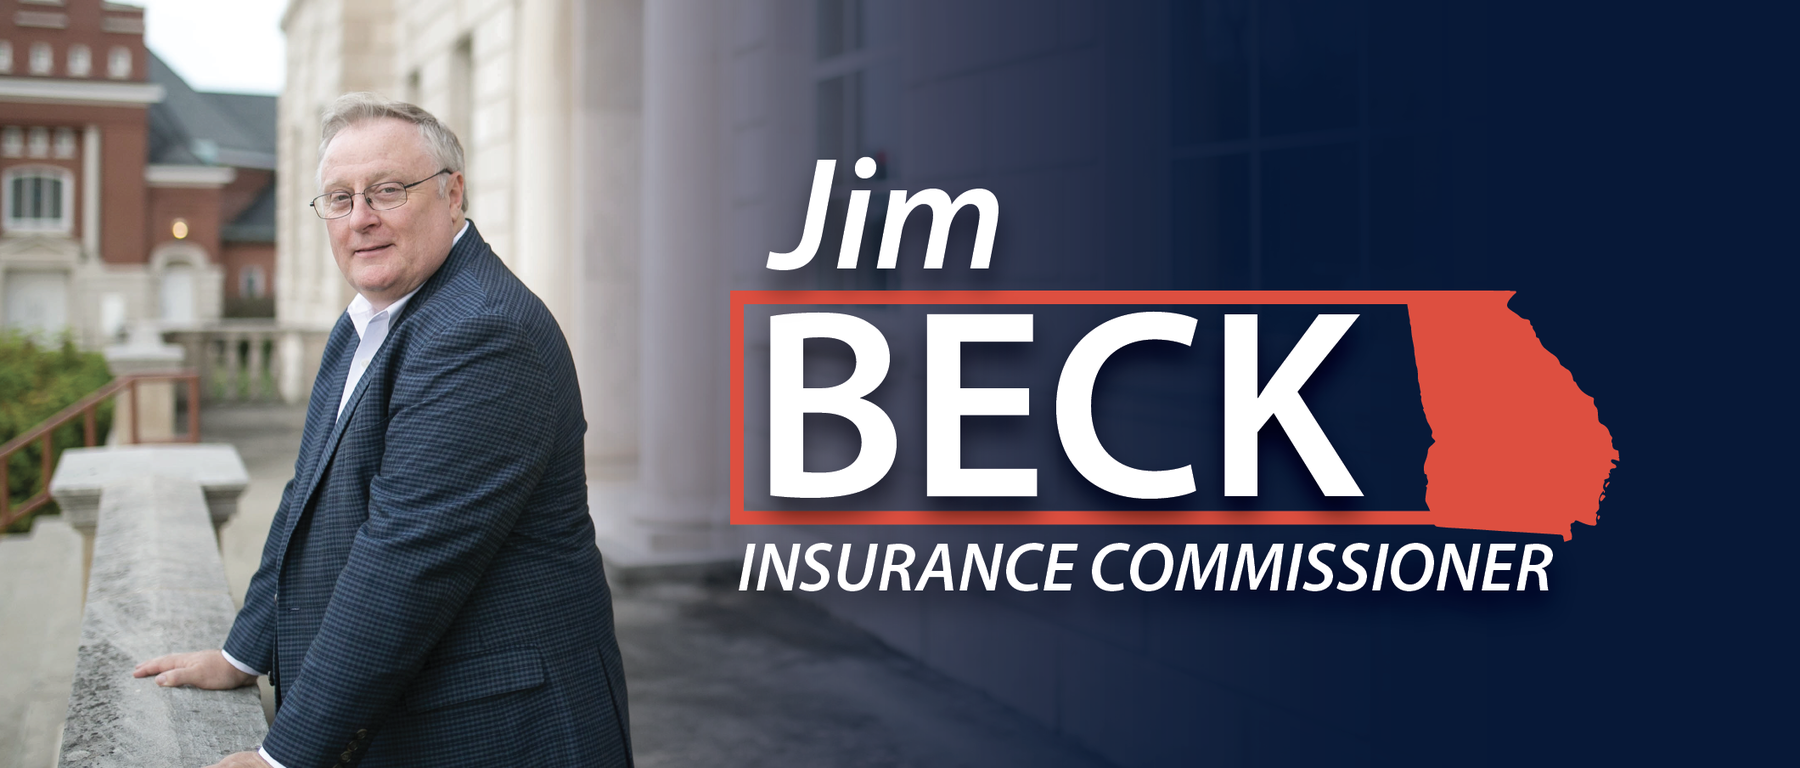 Jim Beck for Georgia: Jim Beck for Insurance Commissioner